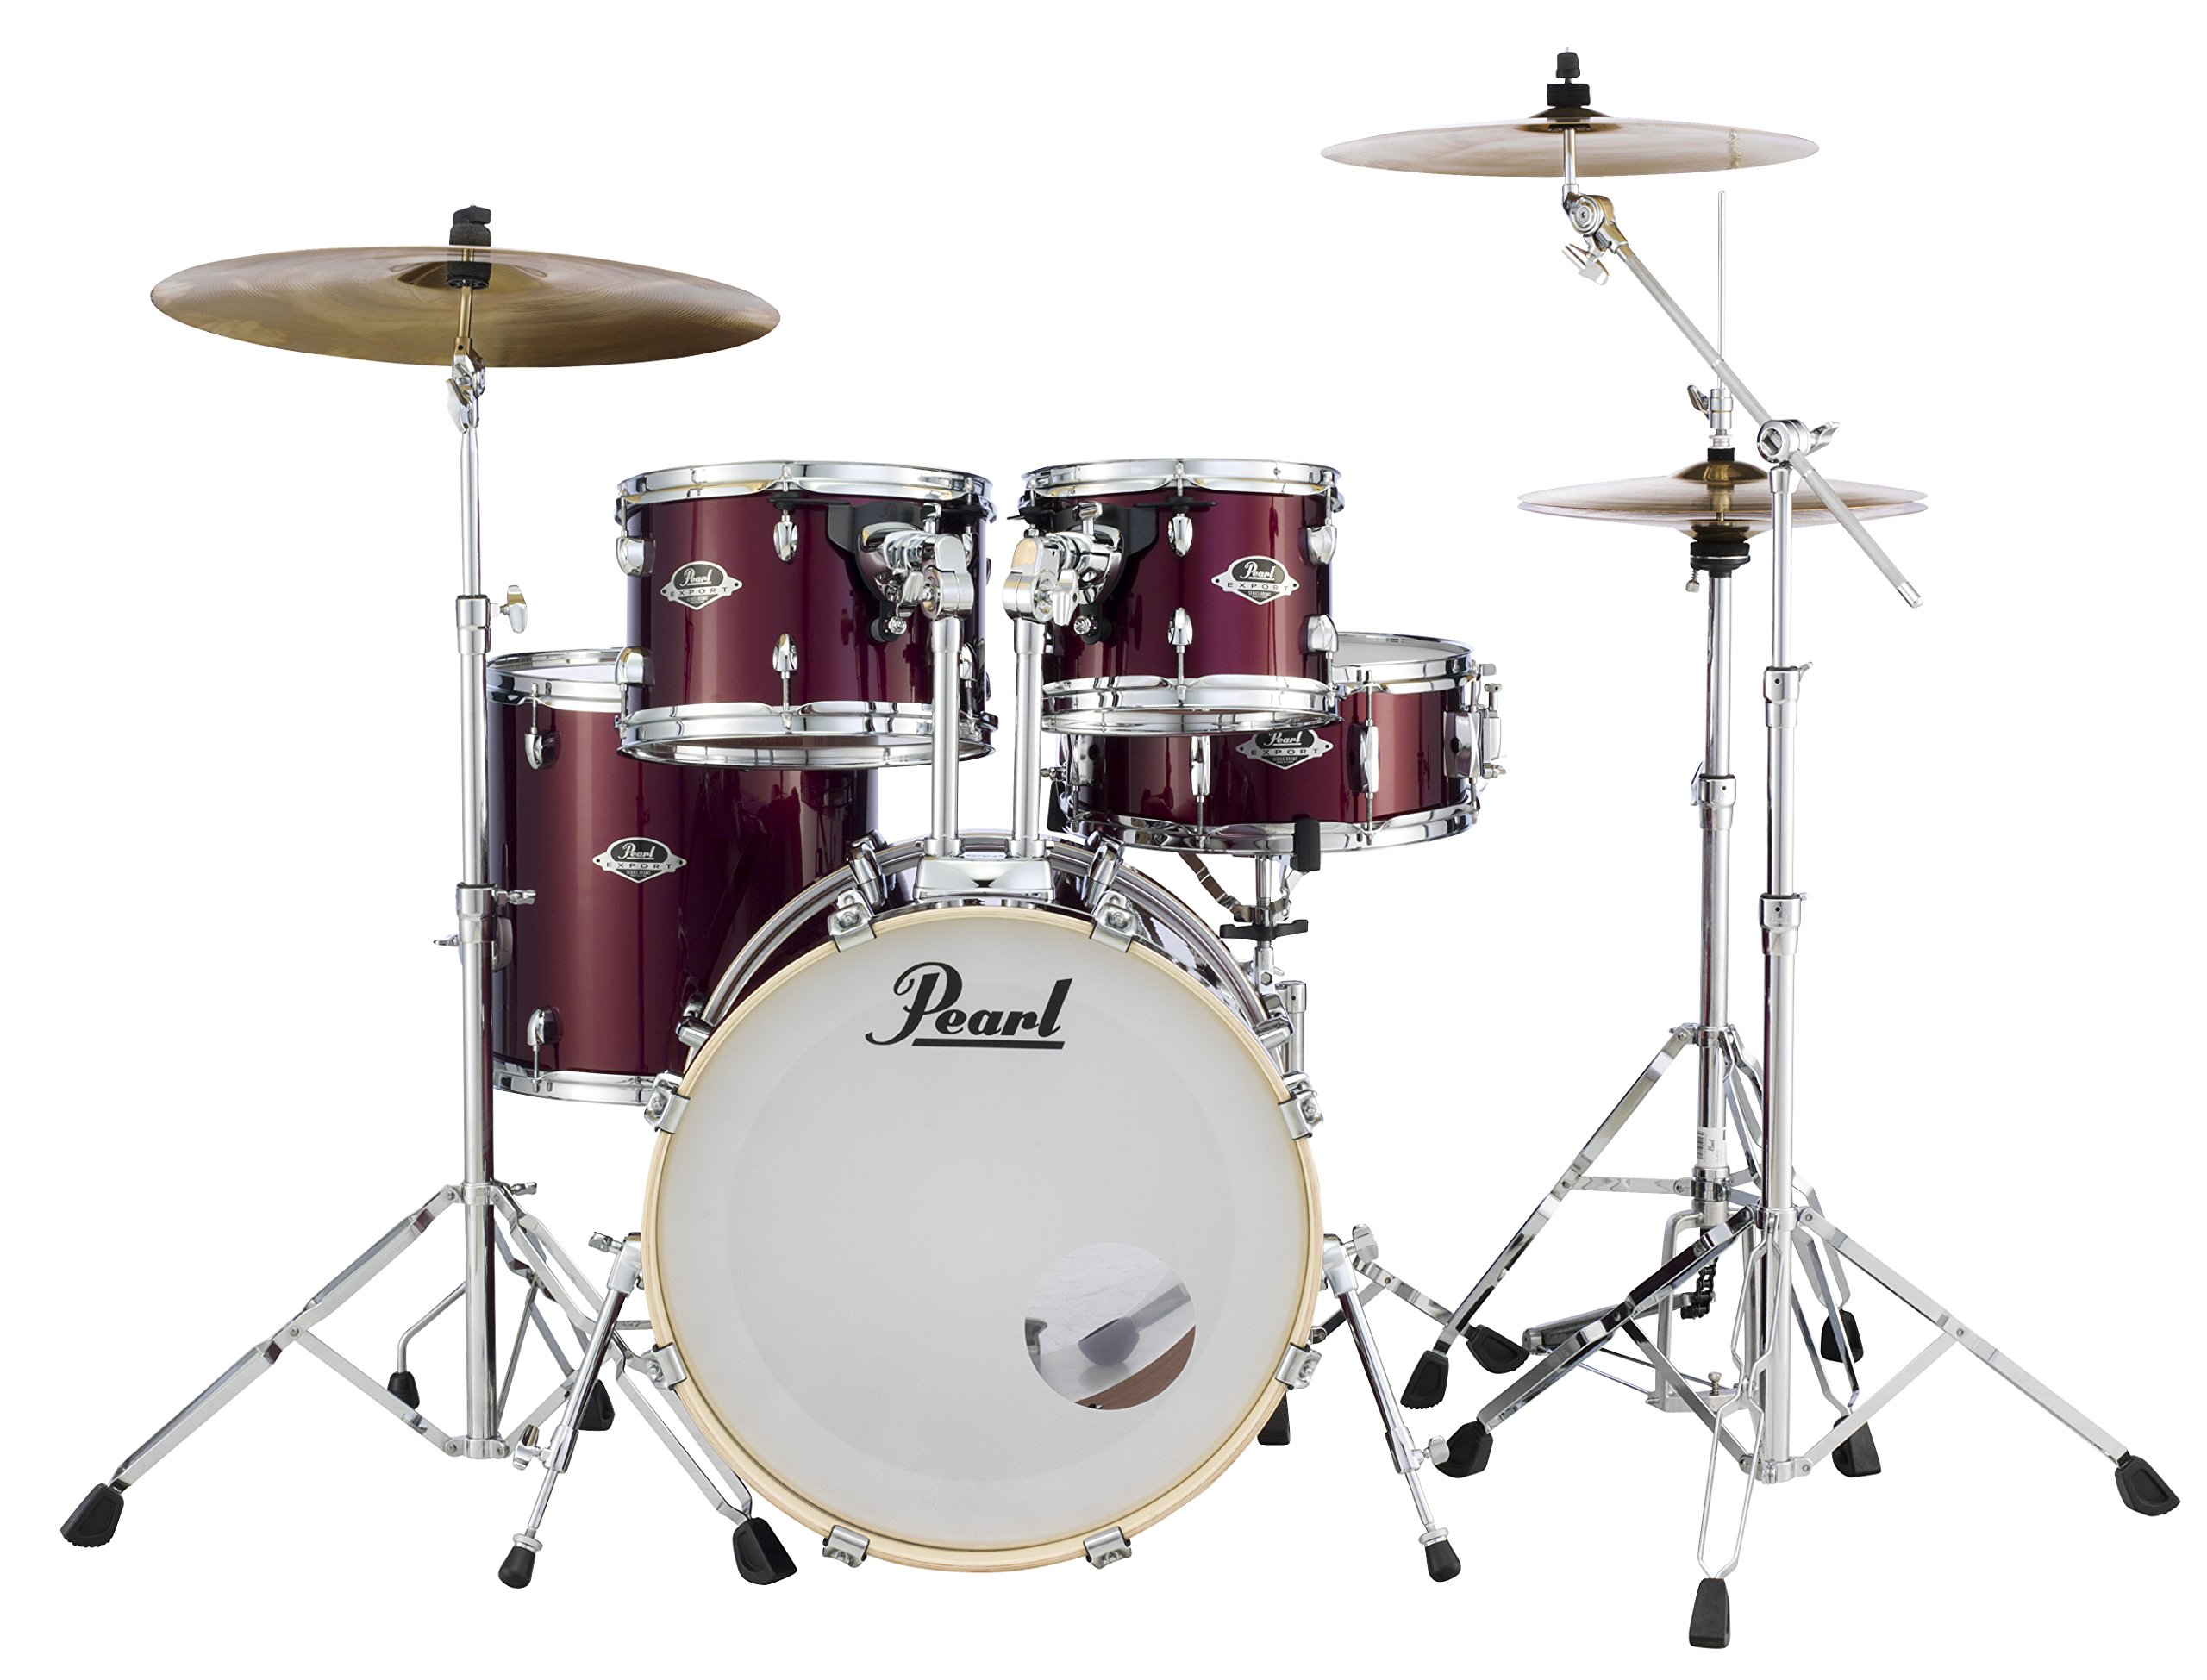 Pearl Export 5-pc. Drum Set w/830-Series Hardware Pack (cymbals not included) BURGUNDY EXX705N/C760